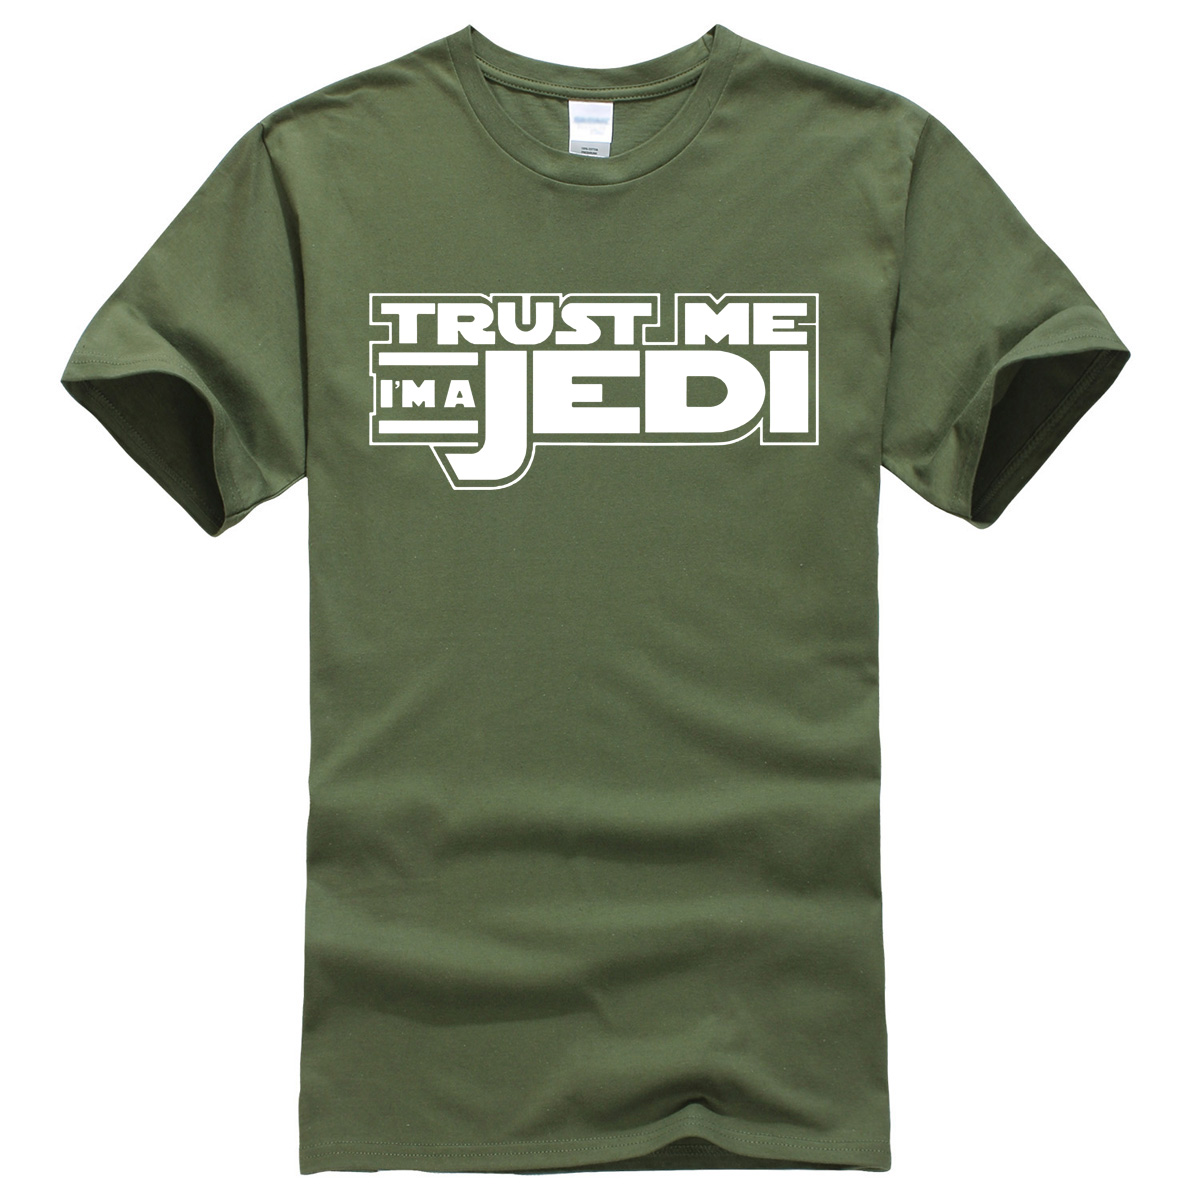 TRUST ME I AM JEDI print 2019 summer man's T-shirt fashion casual short sleeve T-shirt men harajuku kpop jersey homme crossfit